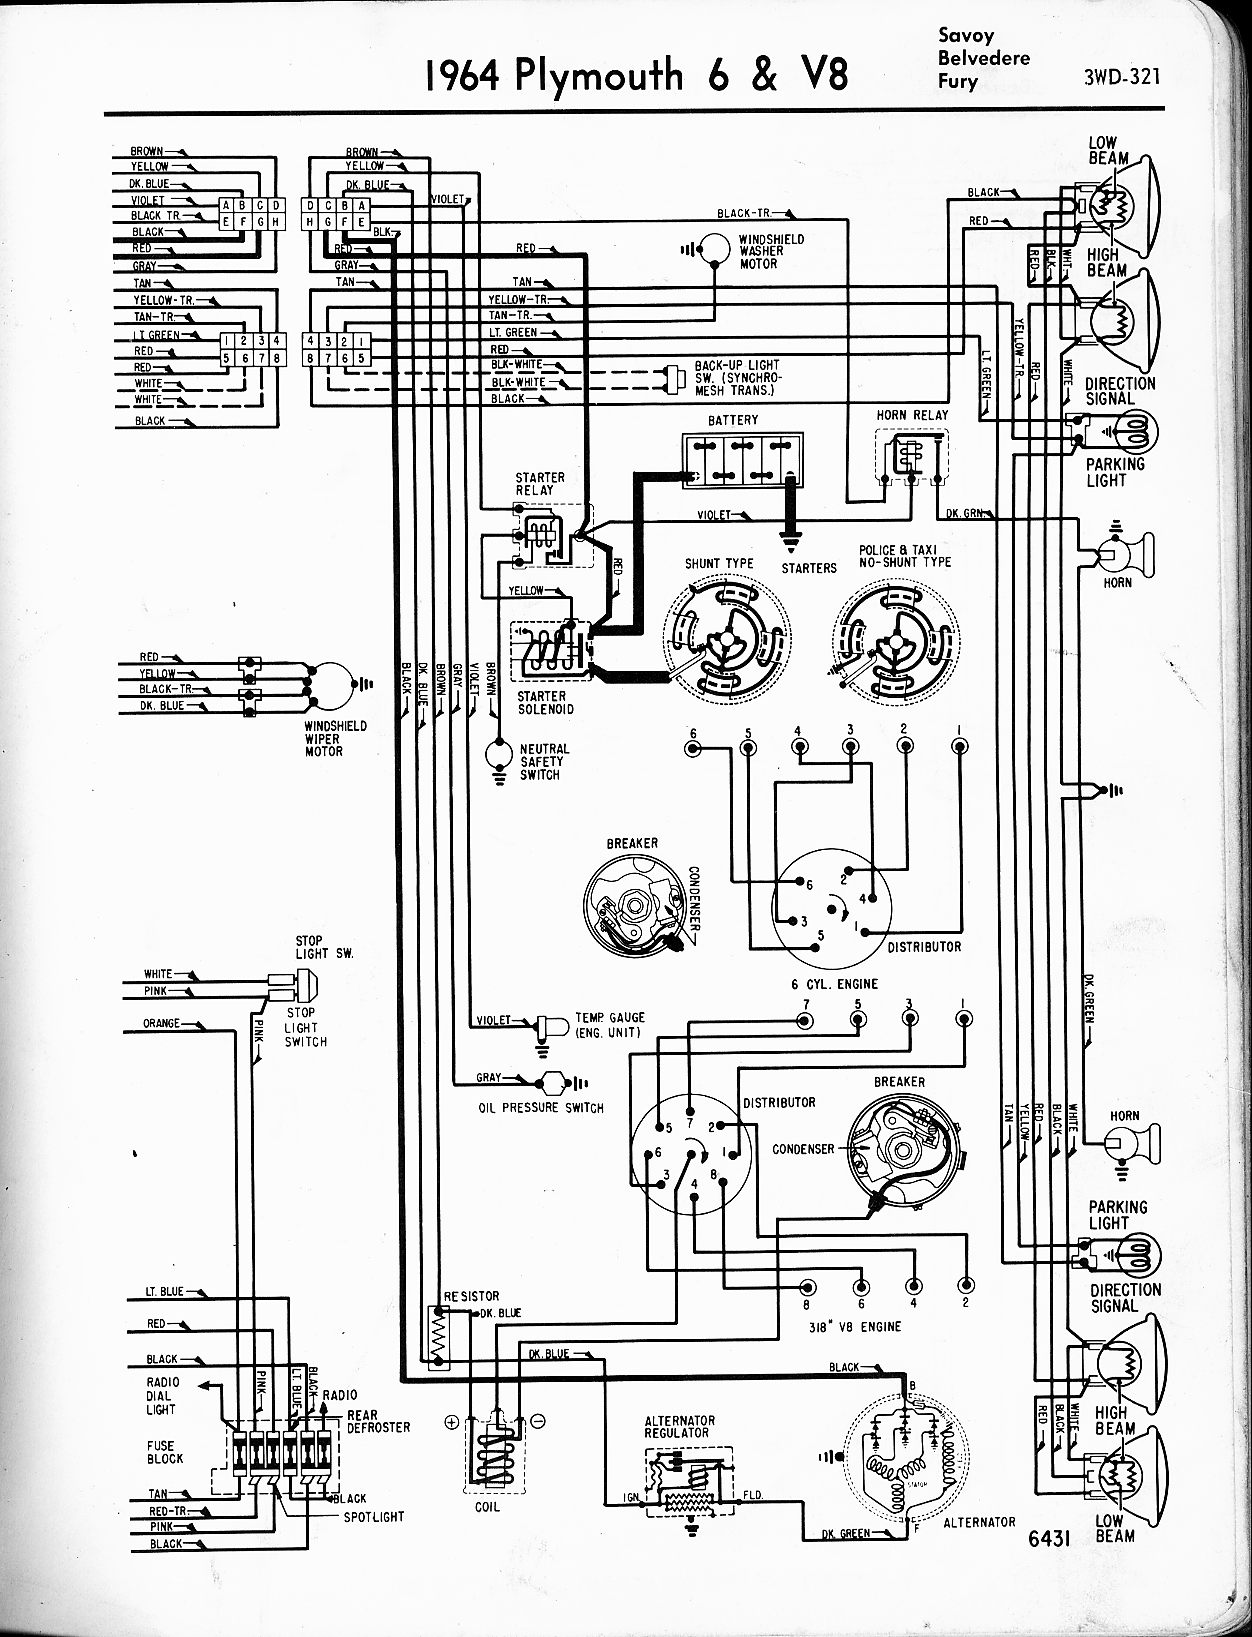 1966 Plymouth Valiant Wiring Diagram | Wiring Library